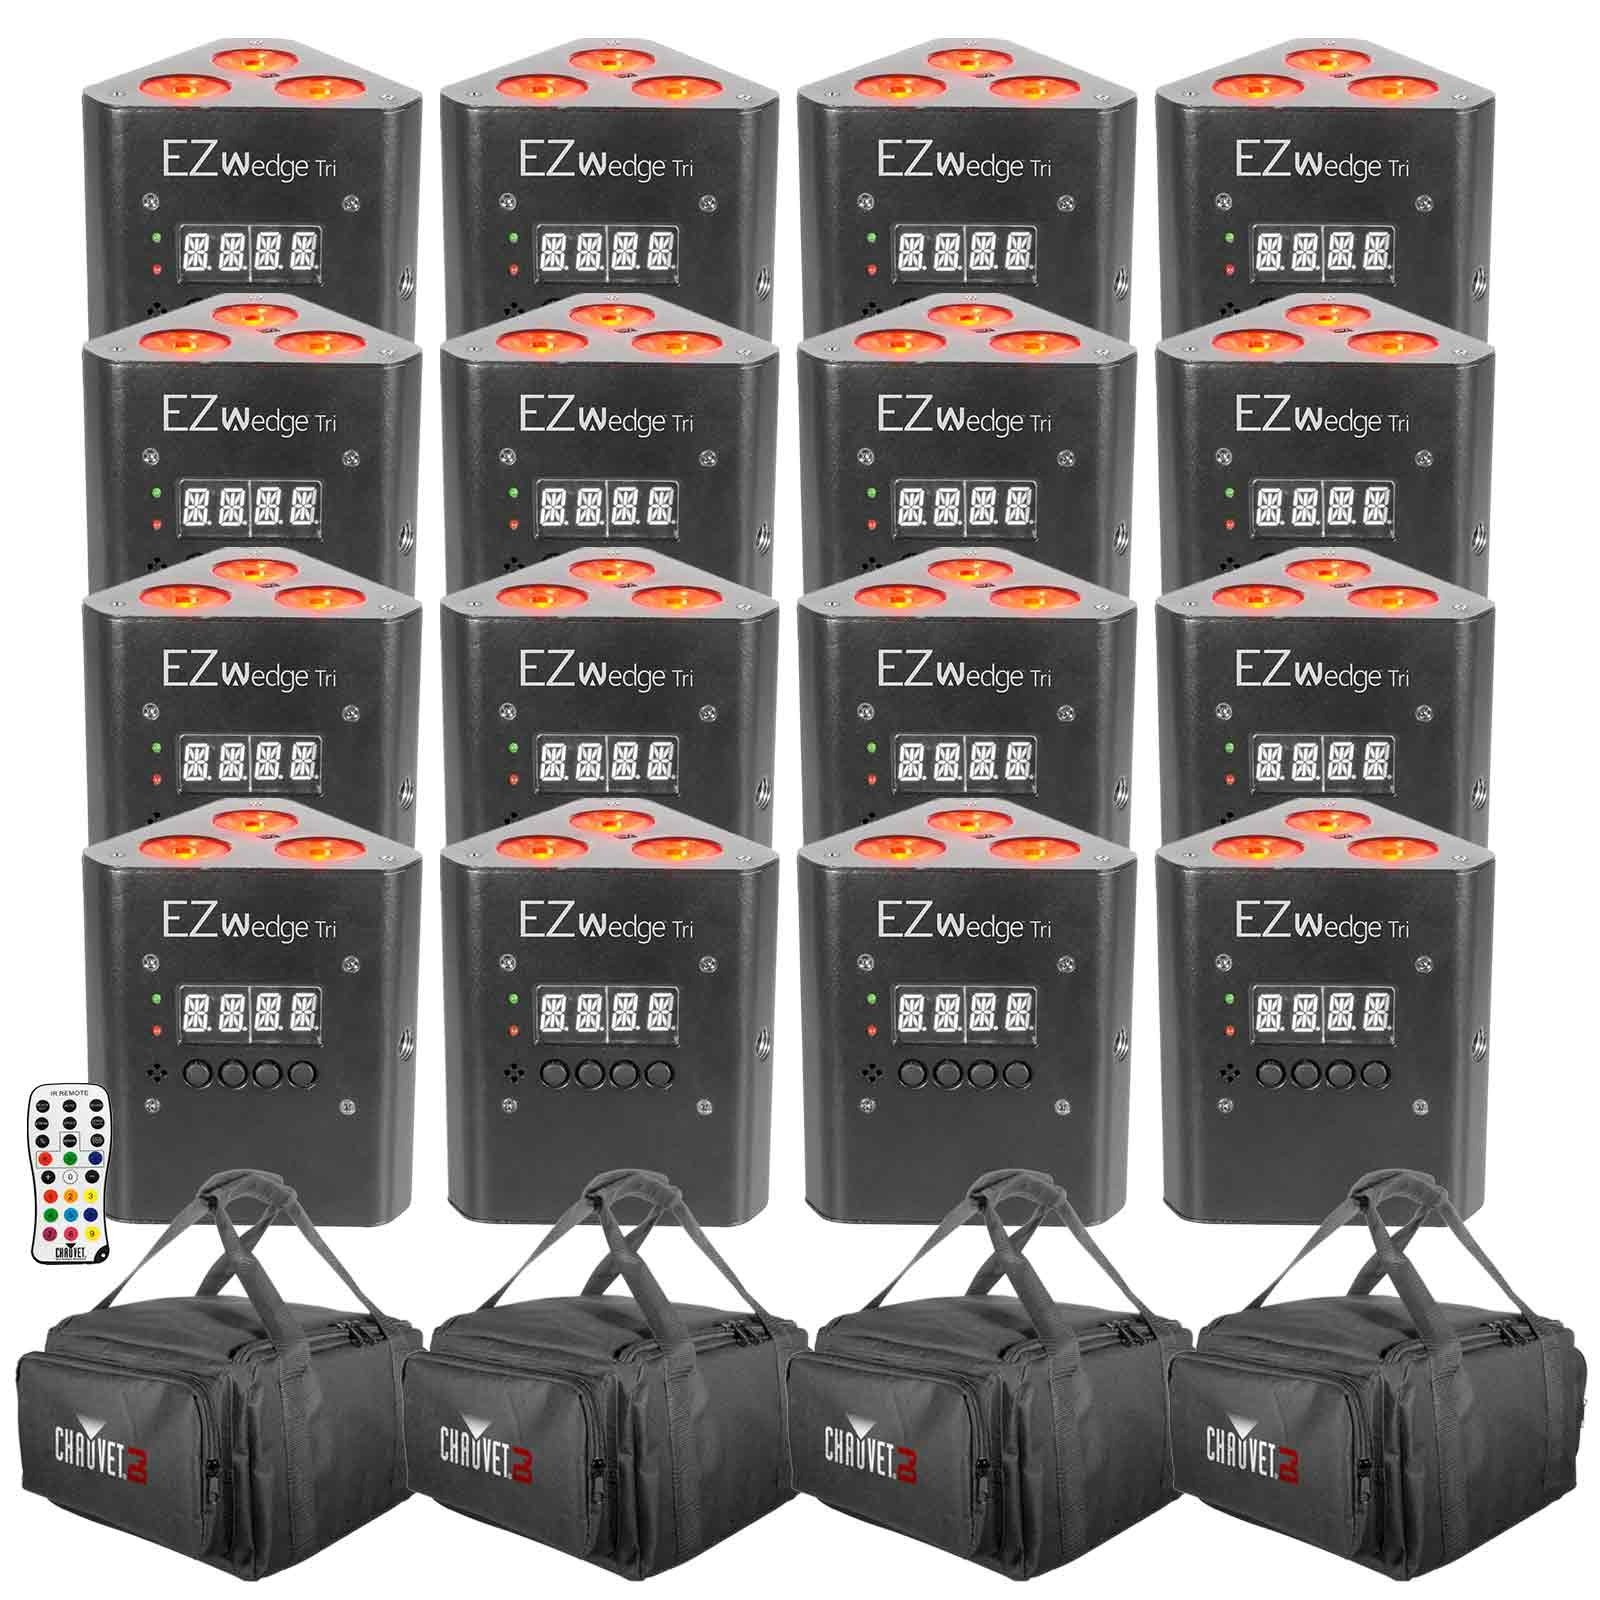 Chauvet dj ezwedge tri 16 pack for Lighting packages for new homes